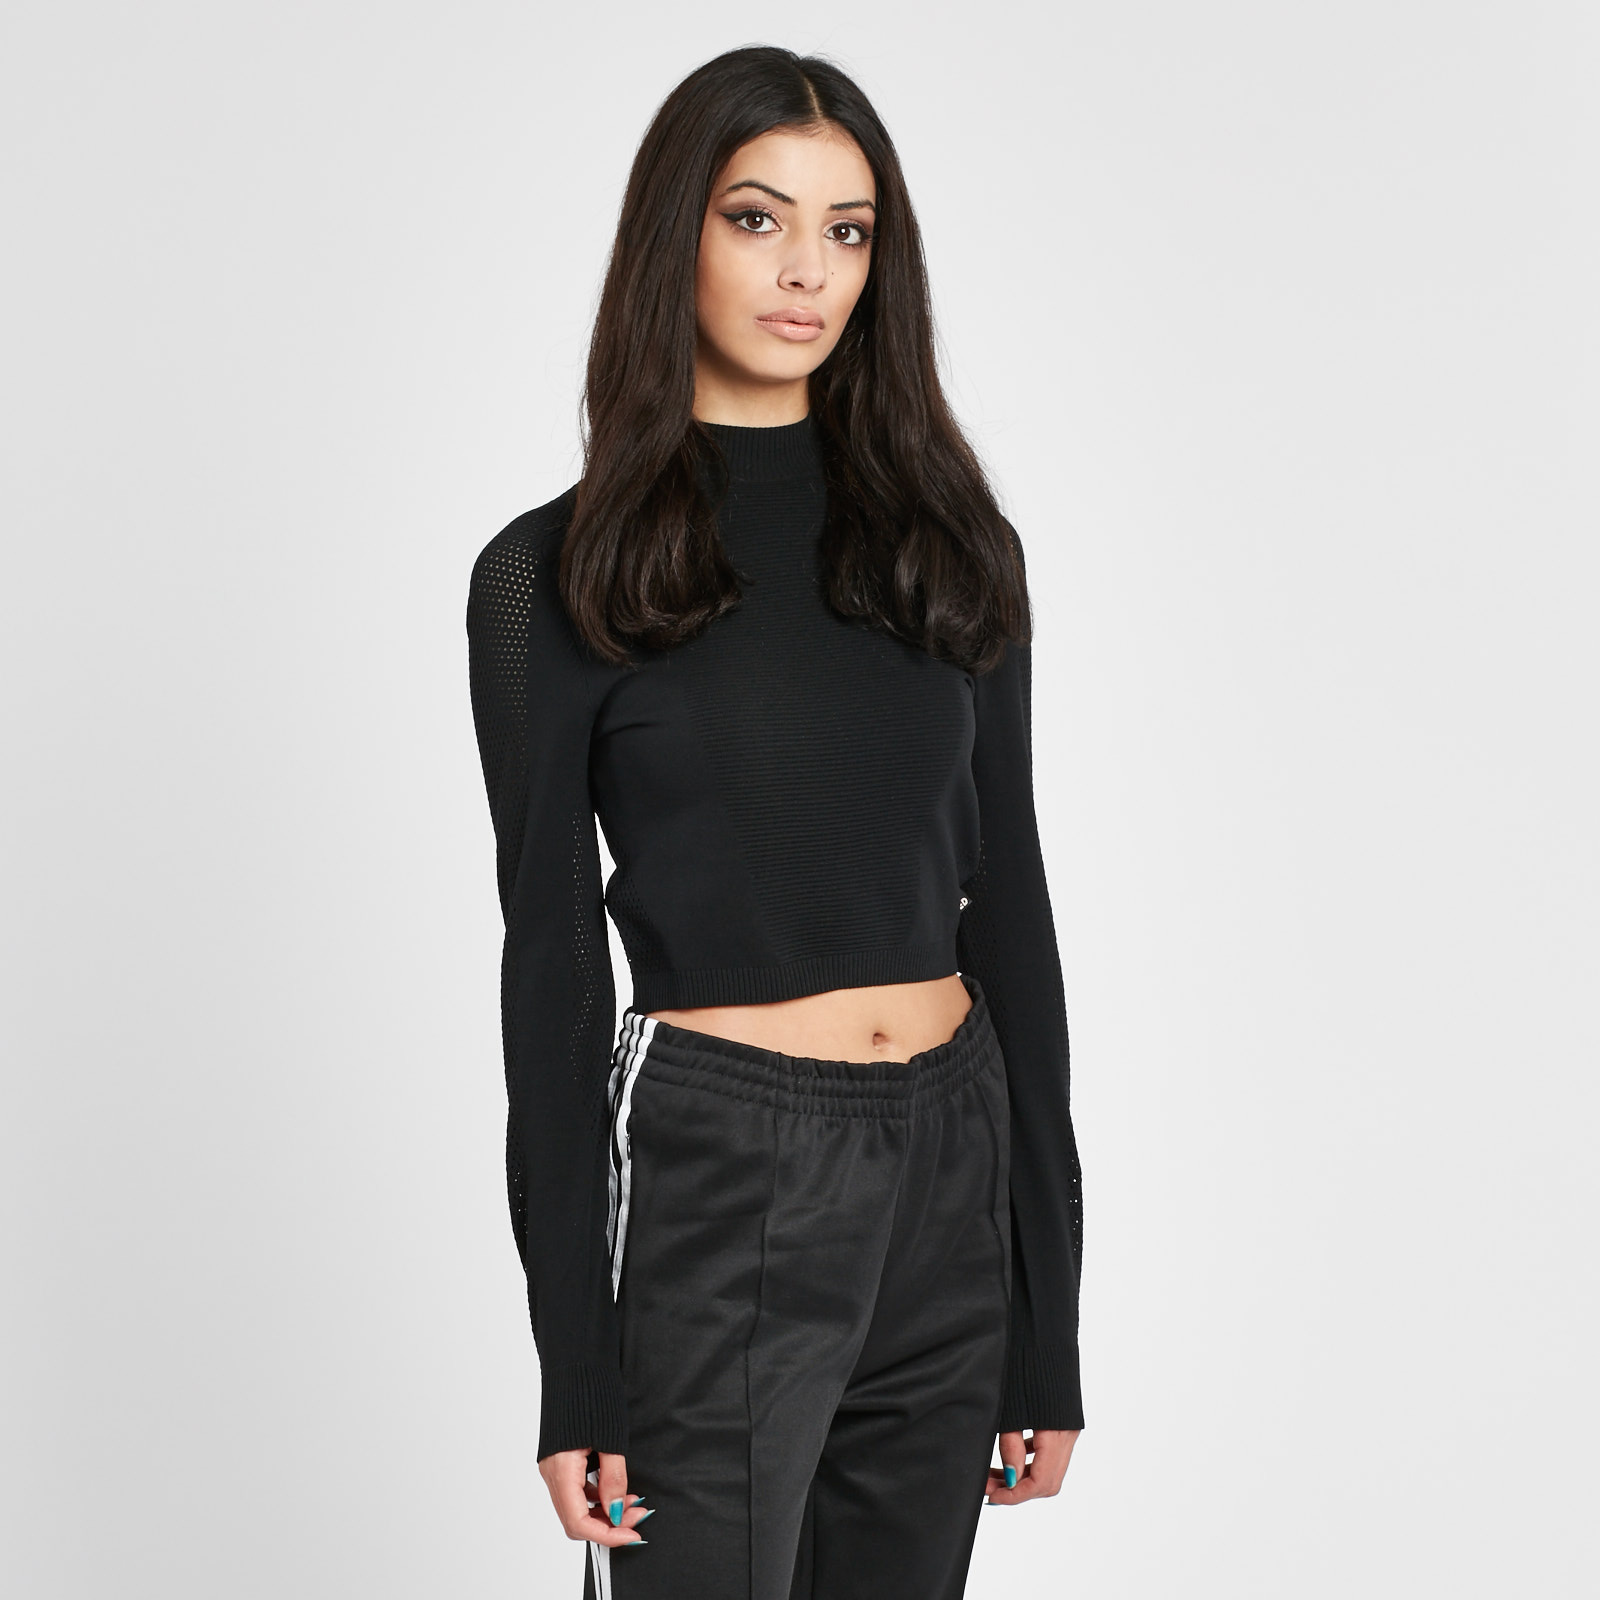 992f688a6e9 adidas Crop Top x Naked - Cy4789 - Sneakersnstuff | sneakers ...